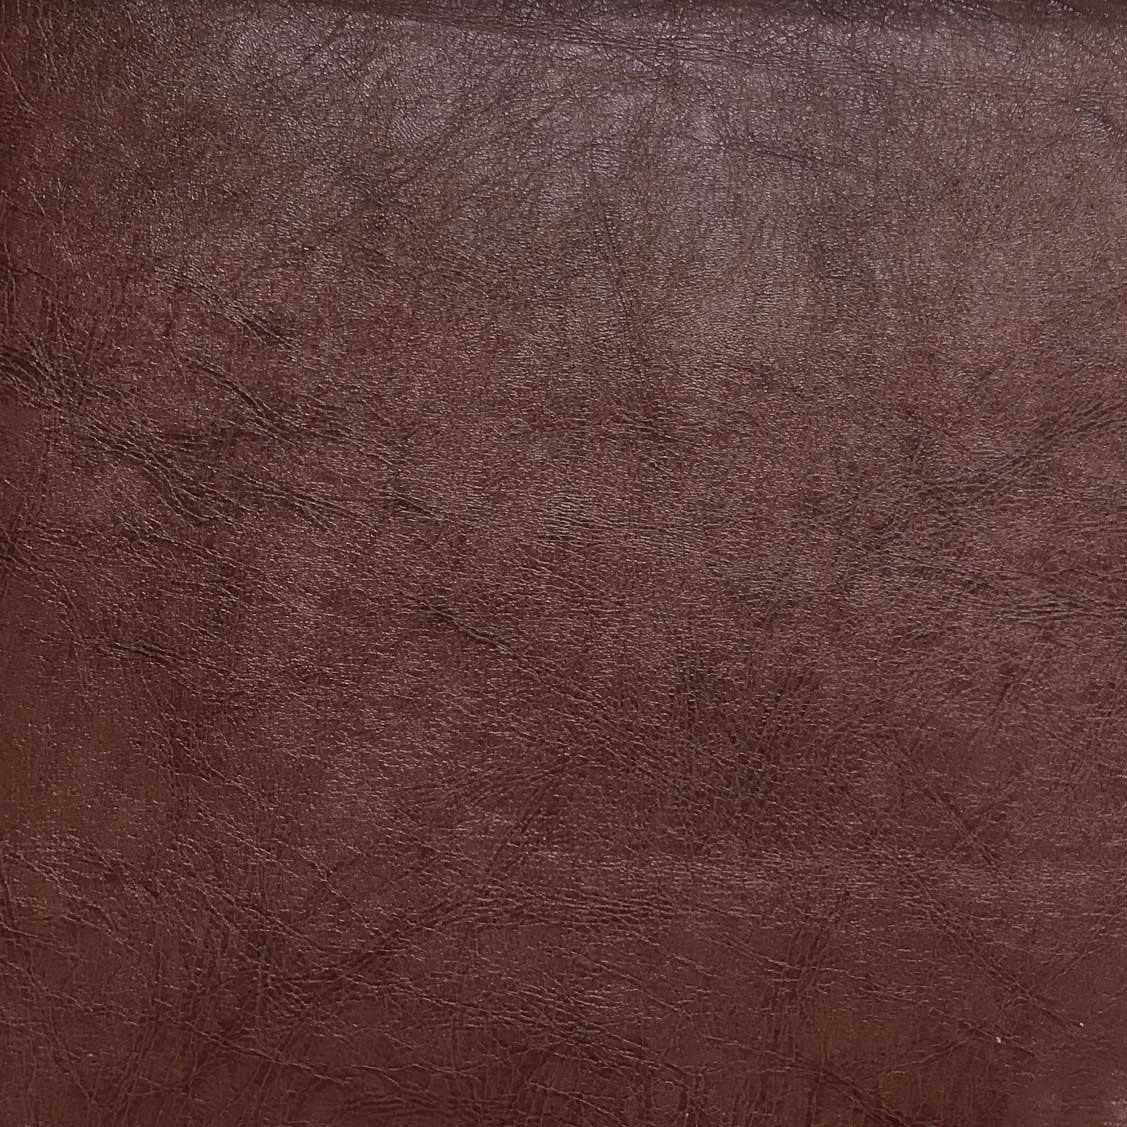 Brink - Solid Vinyl Fabric Vegan Faux Leather Upholstery Fabric by the